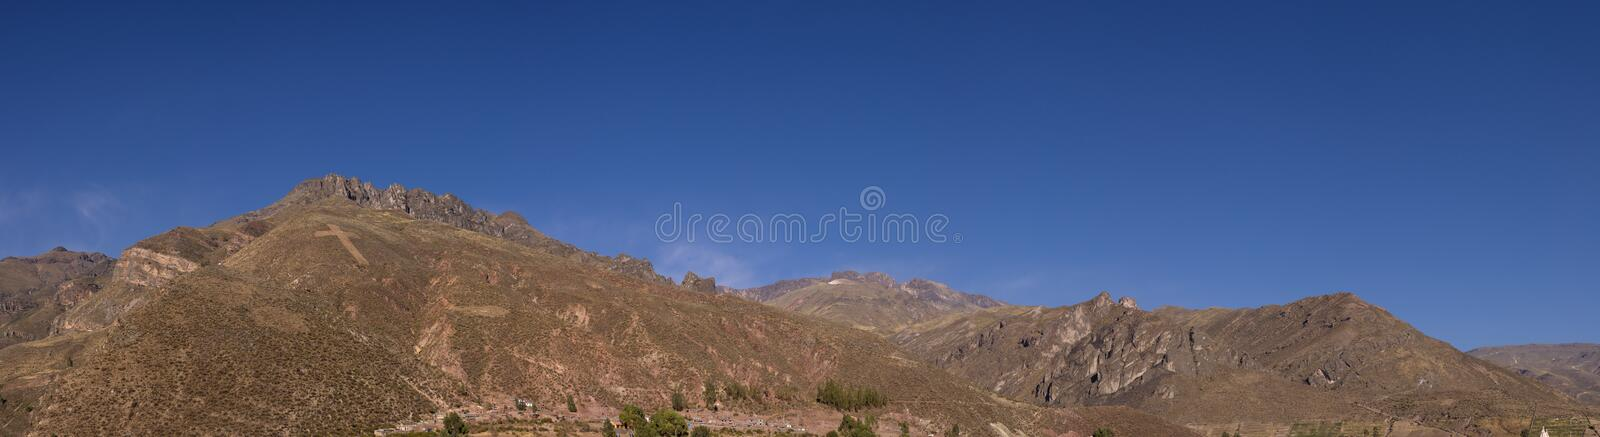 Colca mountains seen from Chivay stock images